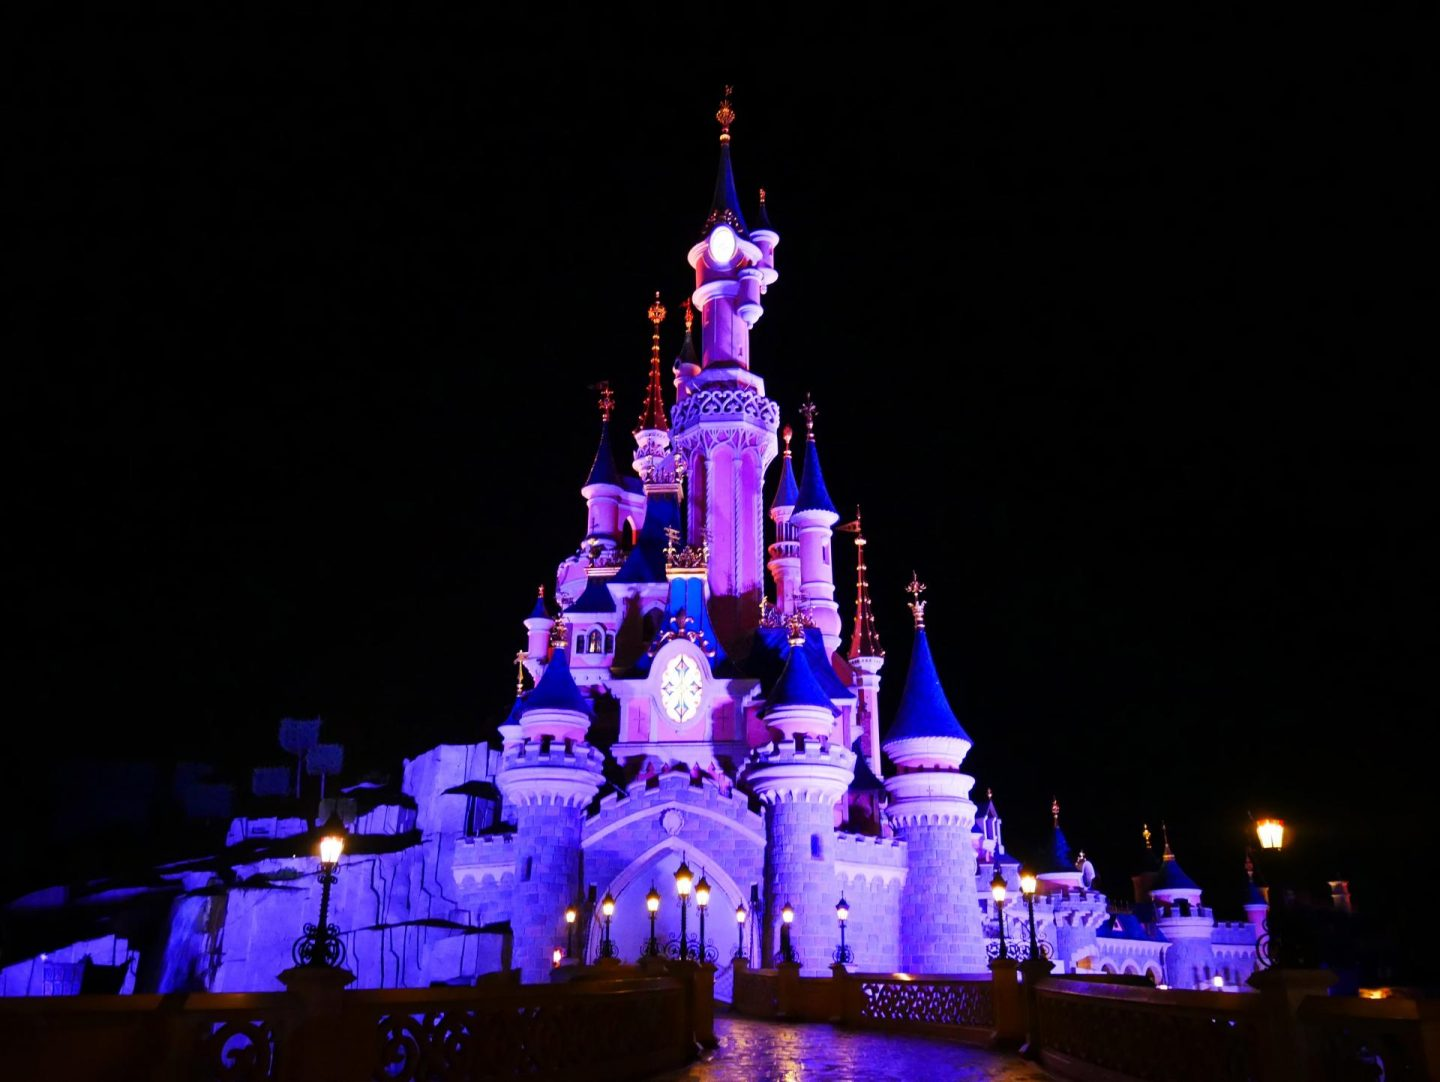 disneyland-paris-my-22nd-birthday-trip-rachel-nicole-uk-travel-disney-blogger-9